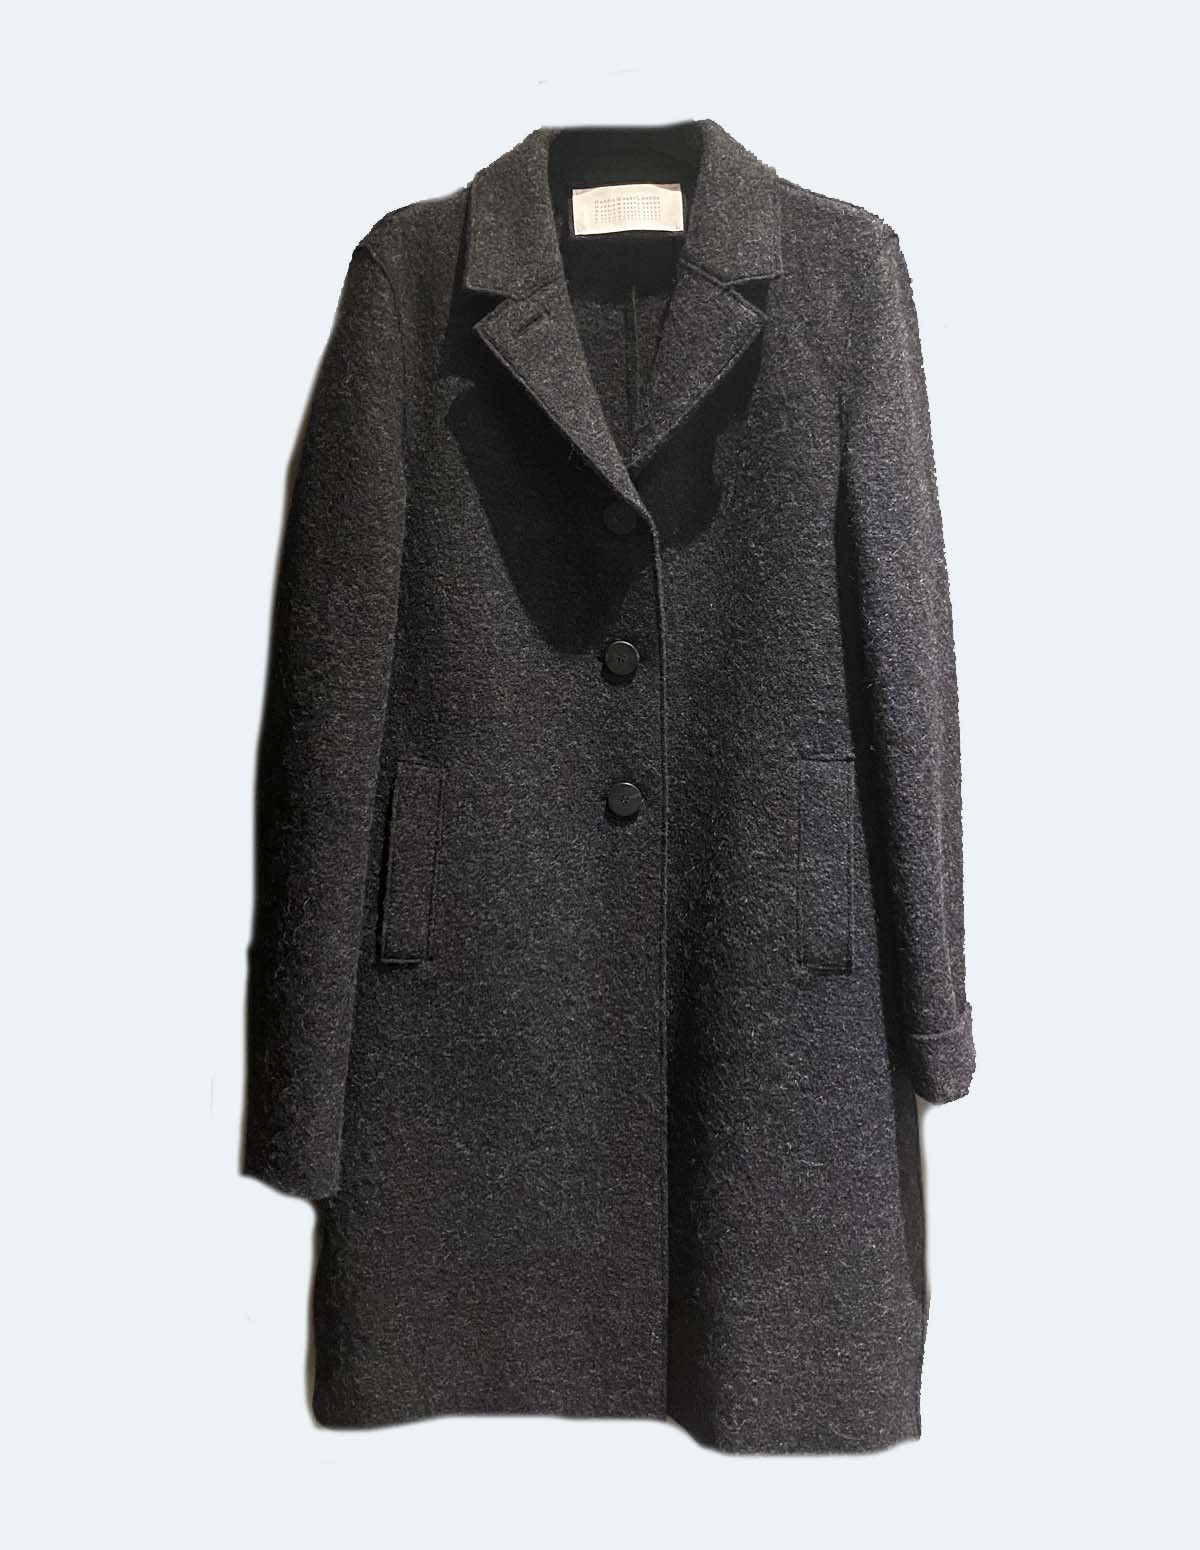 Hwl Button Up Boxy Coat - ANTHRACITE